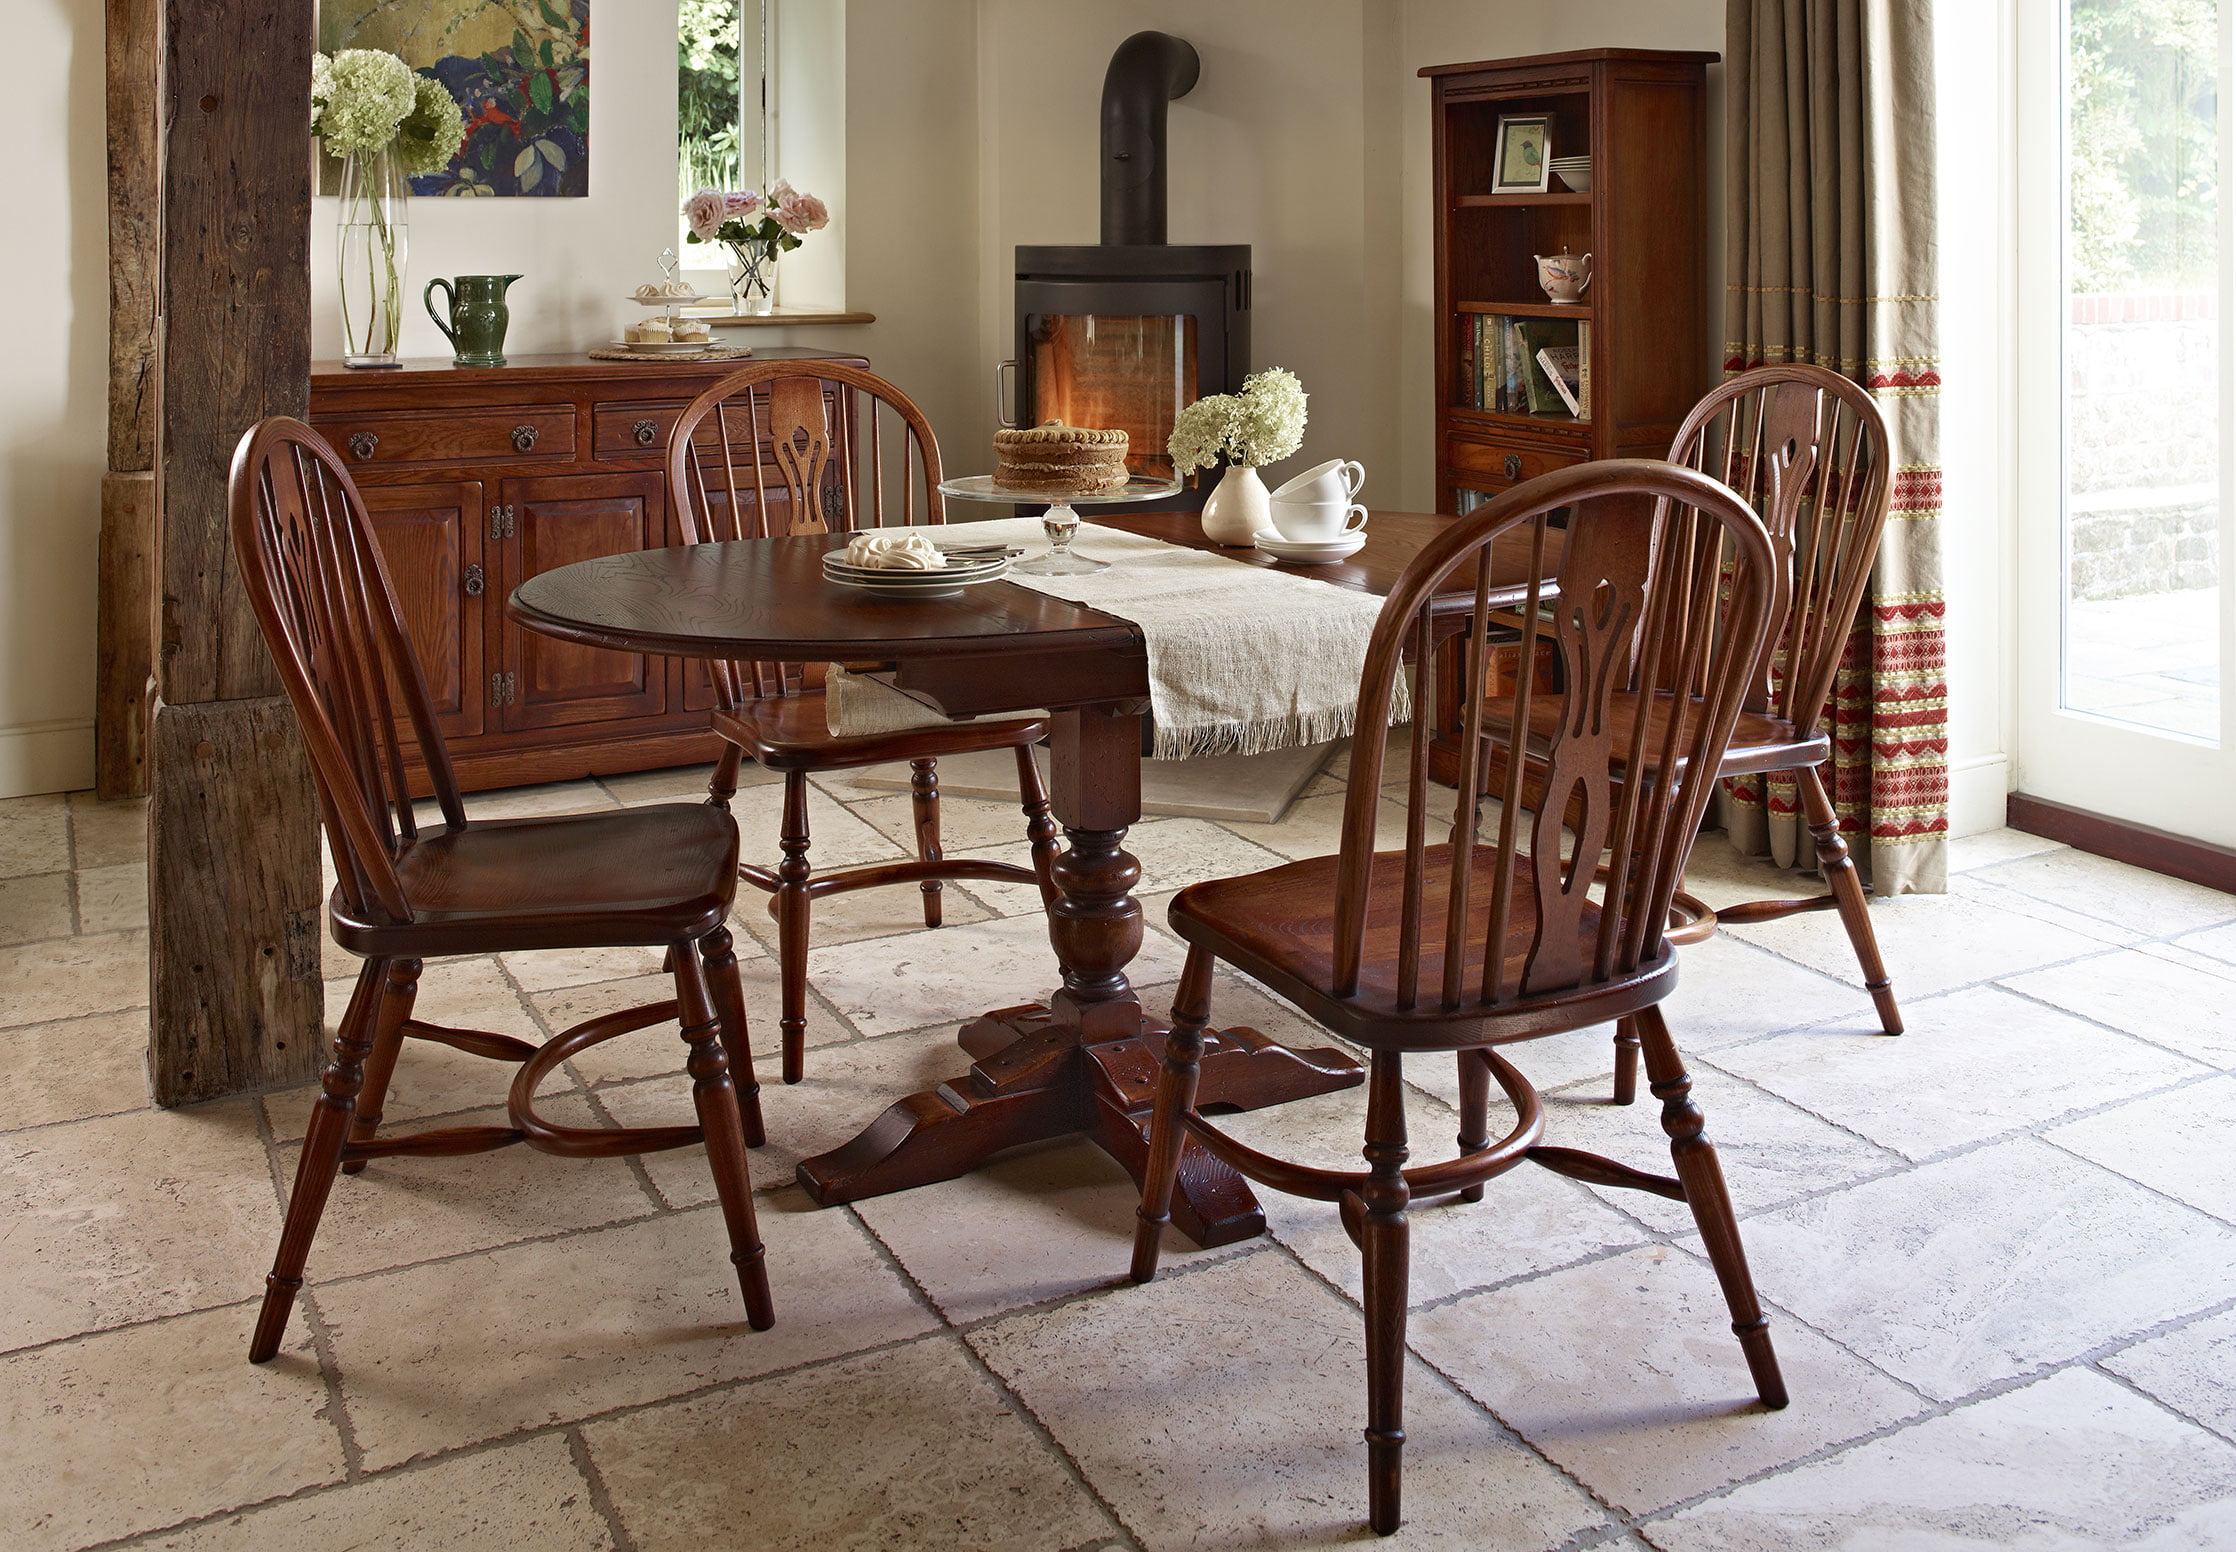 old charm furniture collection wood bros old charm furniture collection